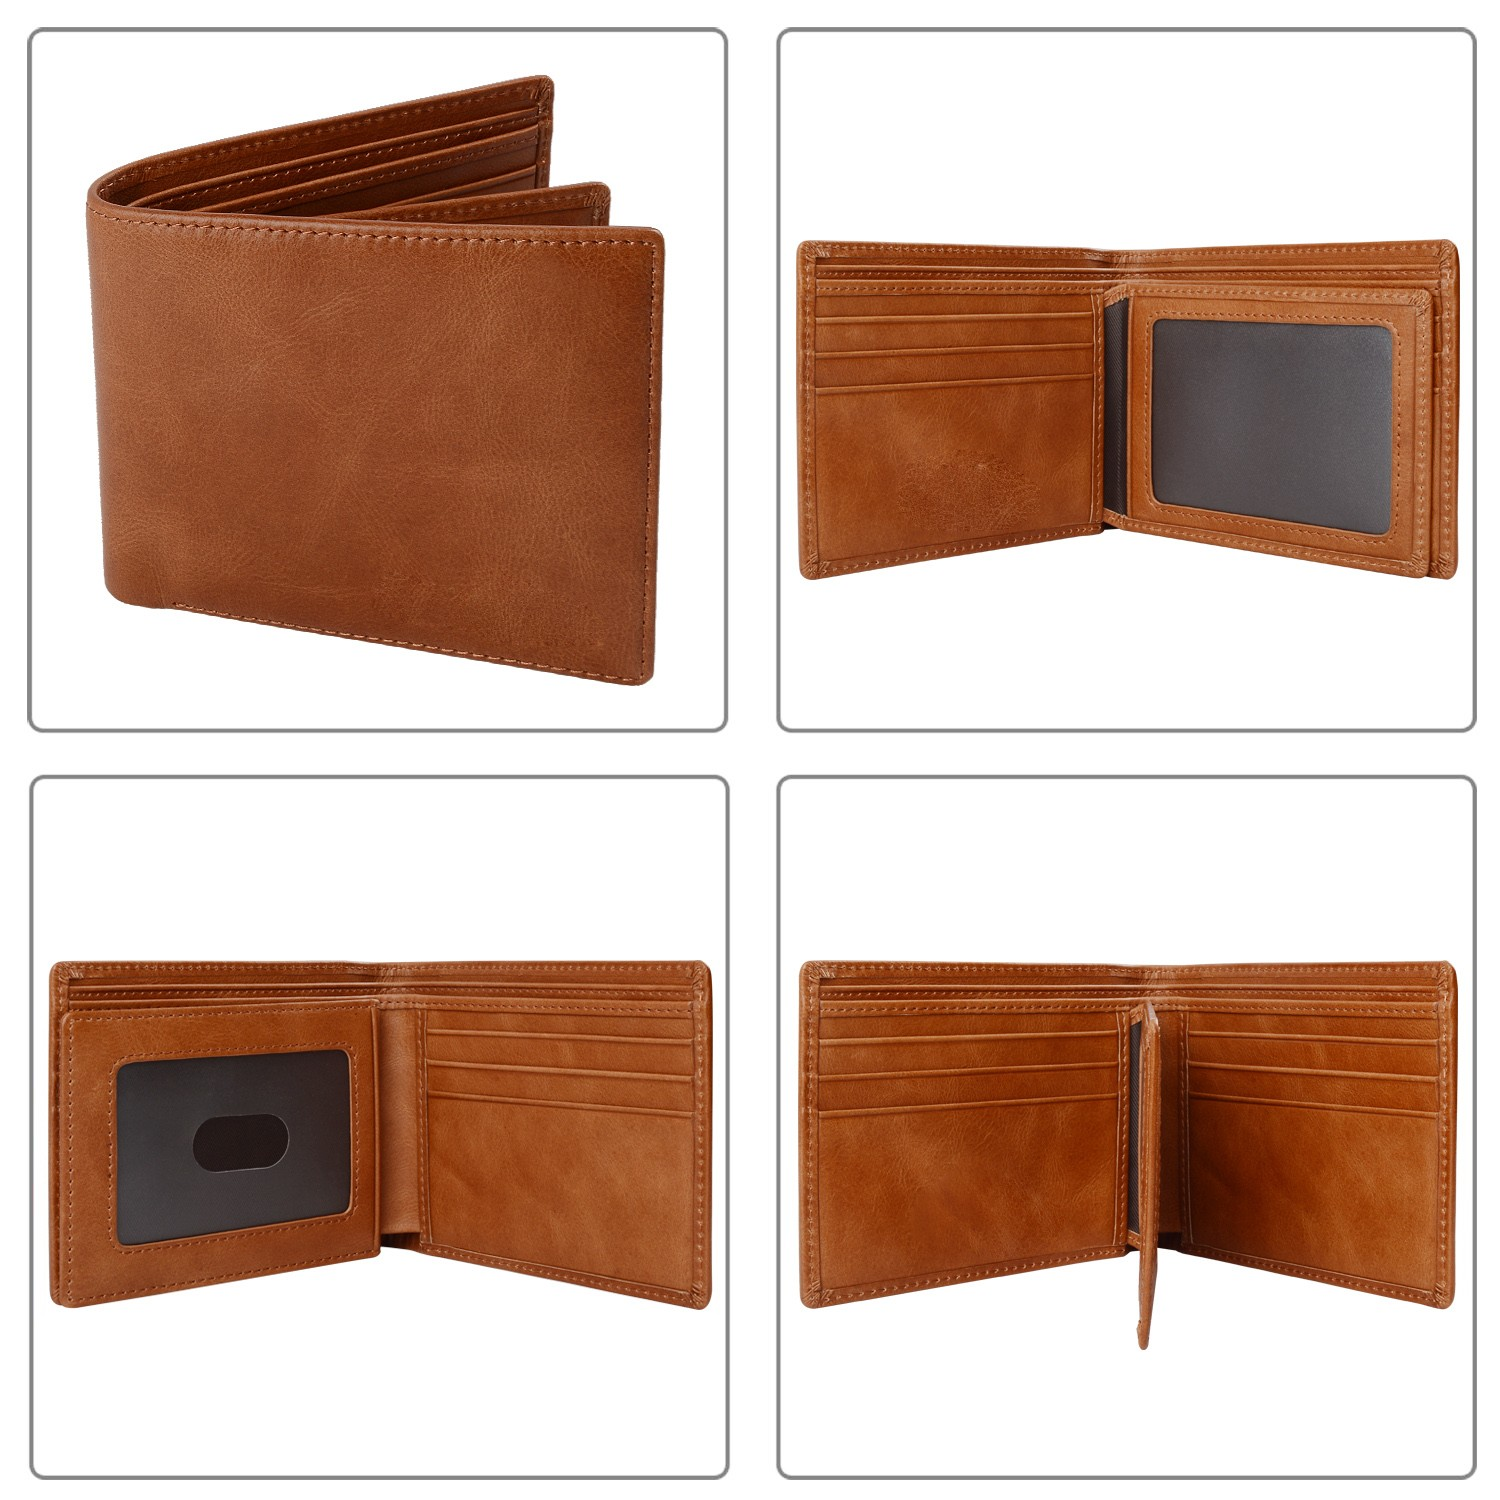 leather travel wallet large capacity for men-9